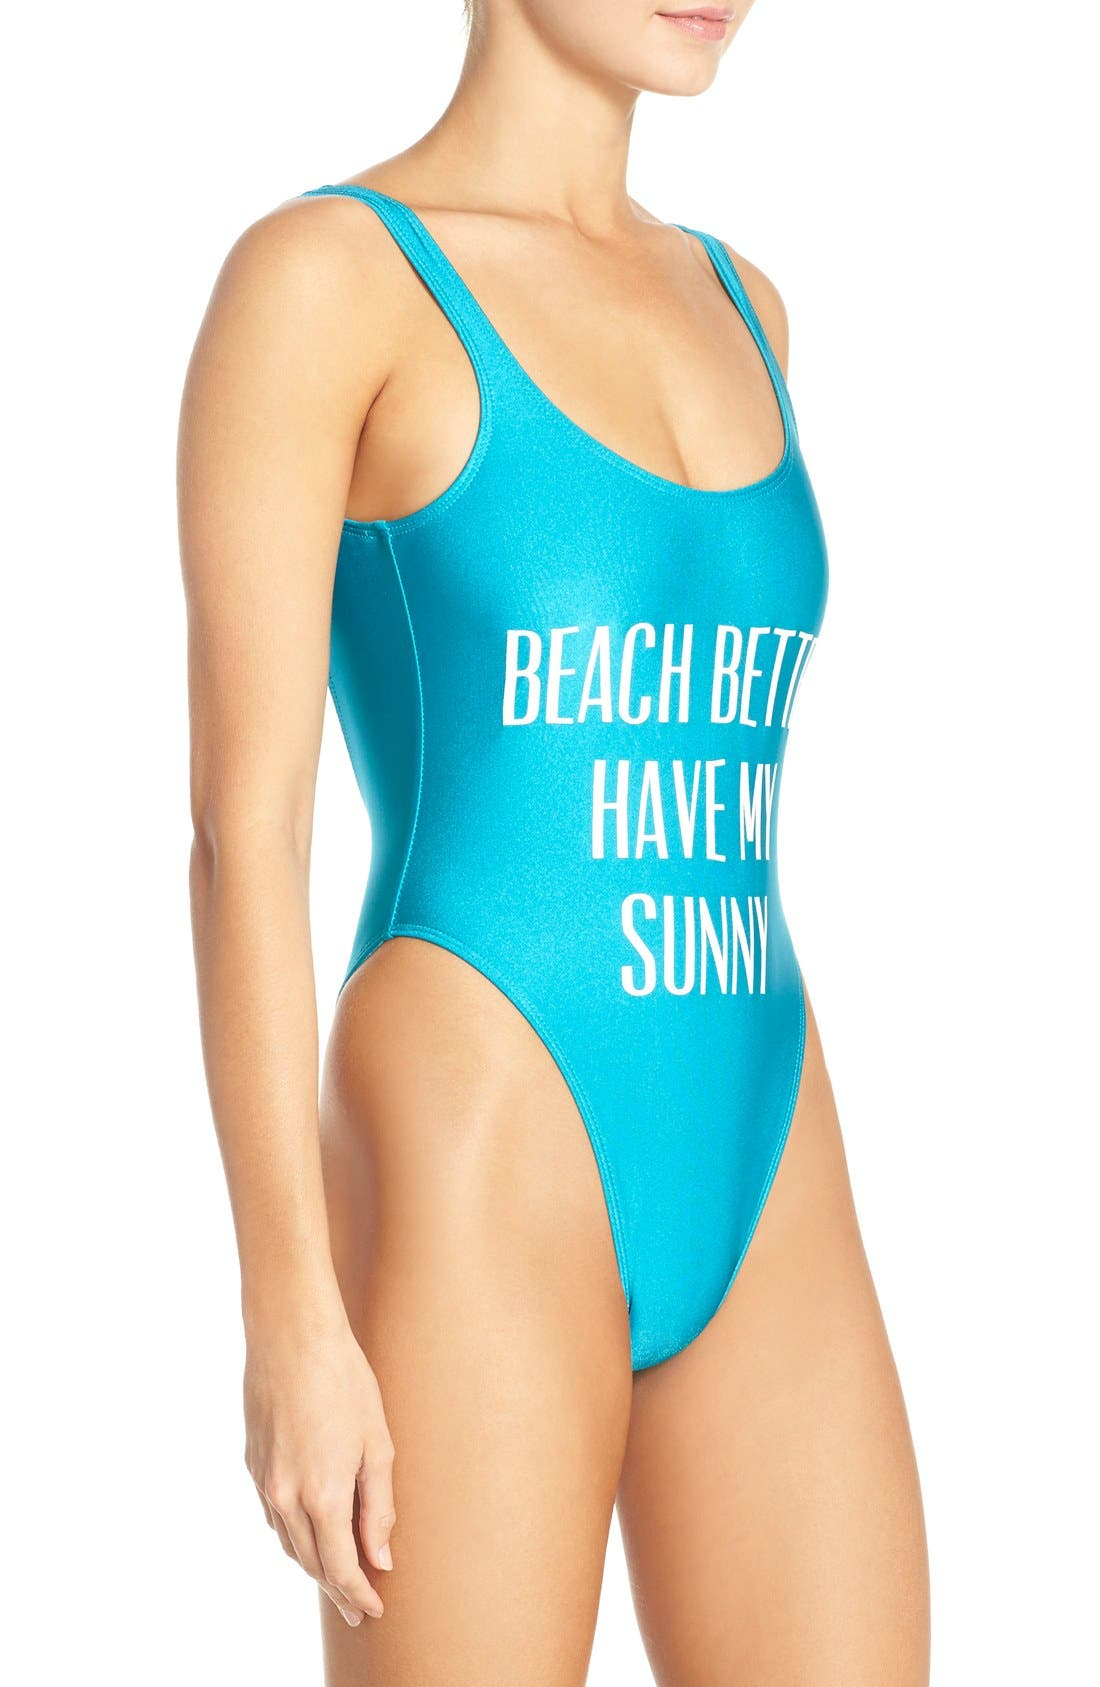 Alternate Image 3  - Private Party 'Beach Better Have My Sunny' One-Piece Swimsuit